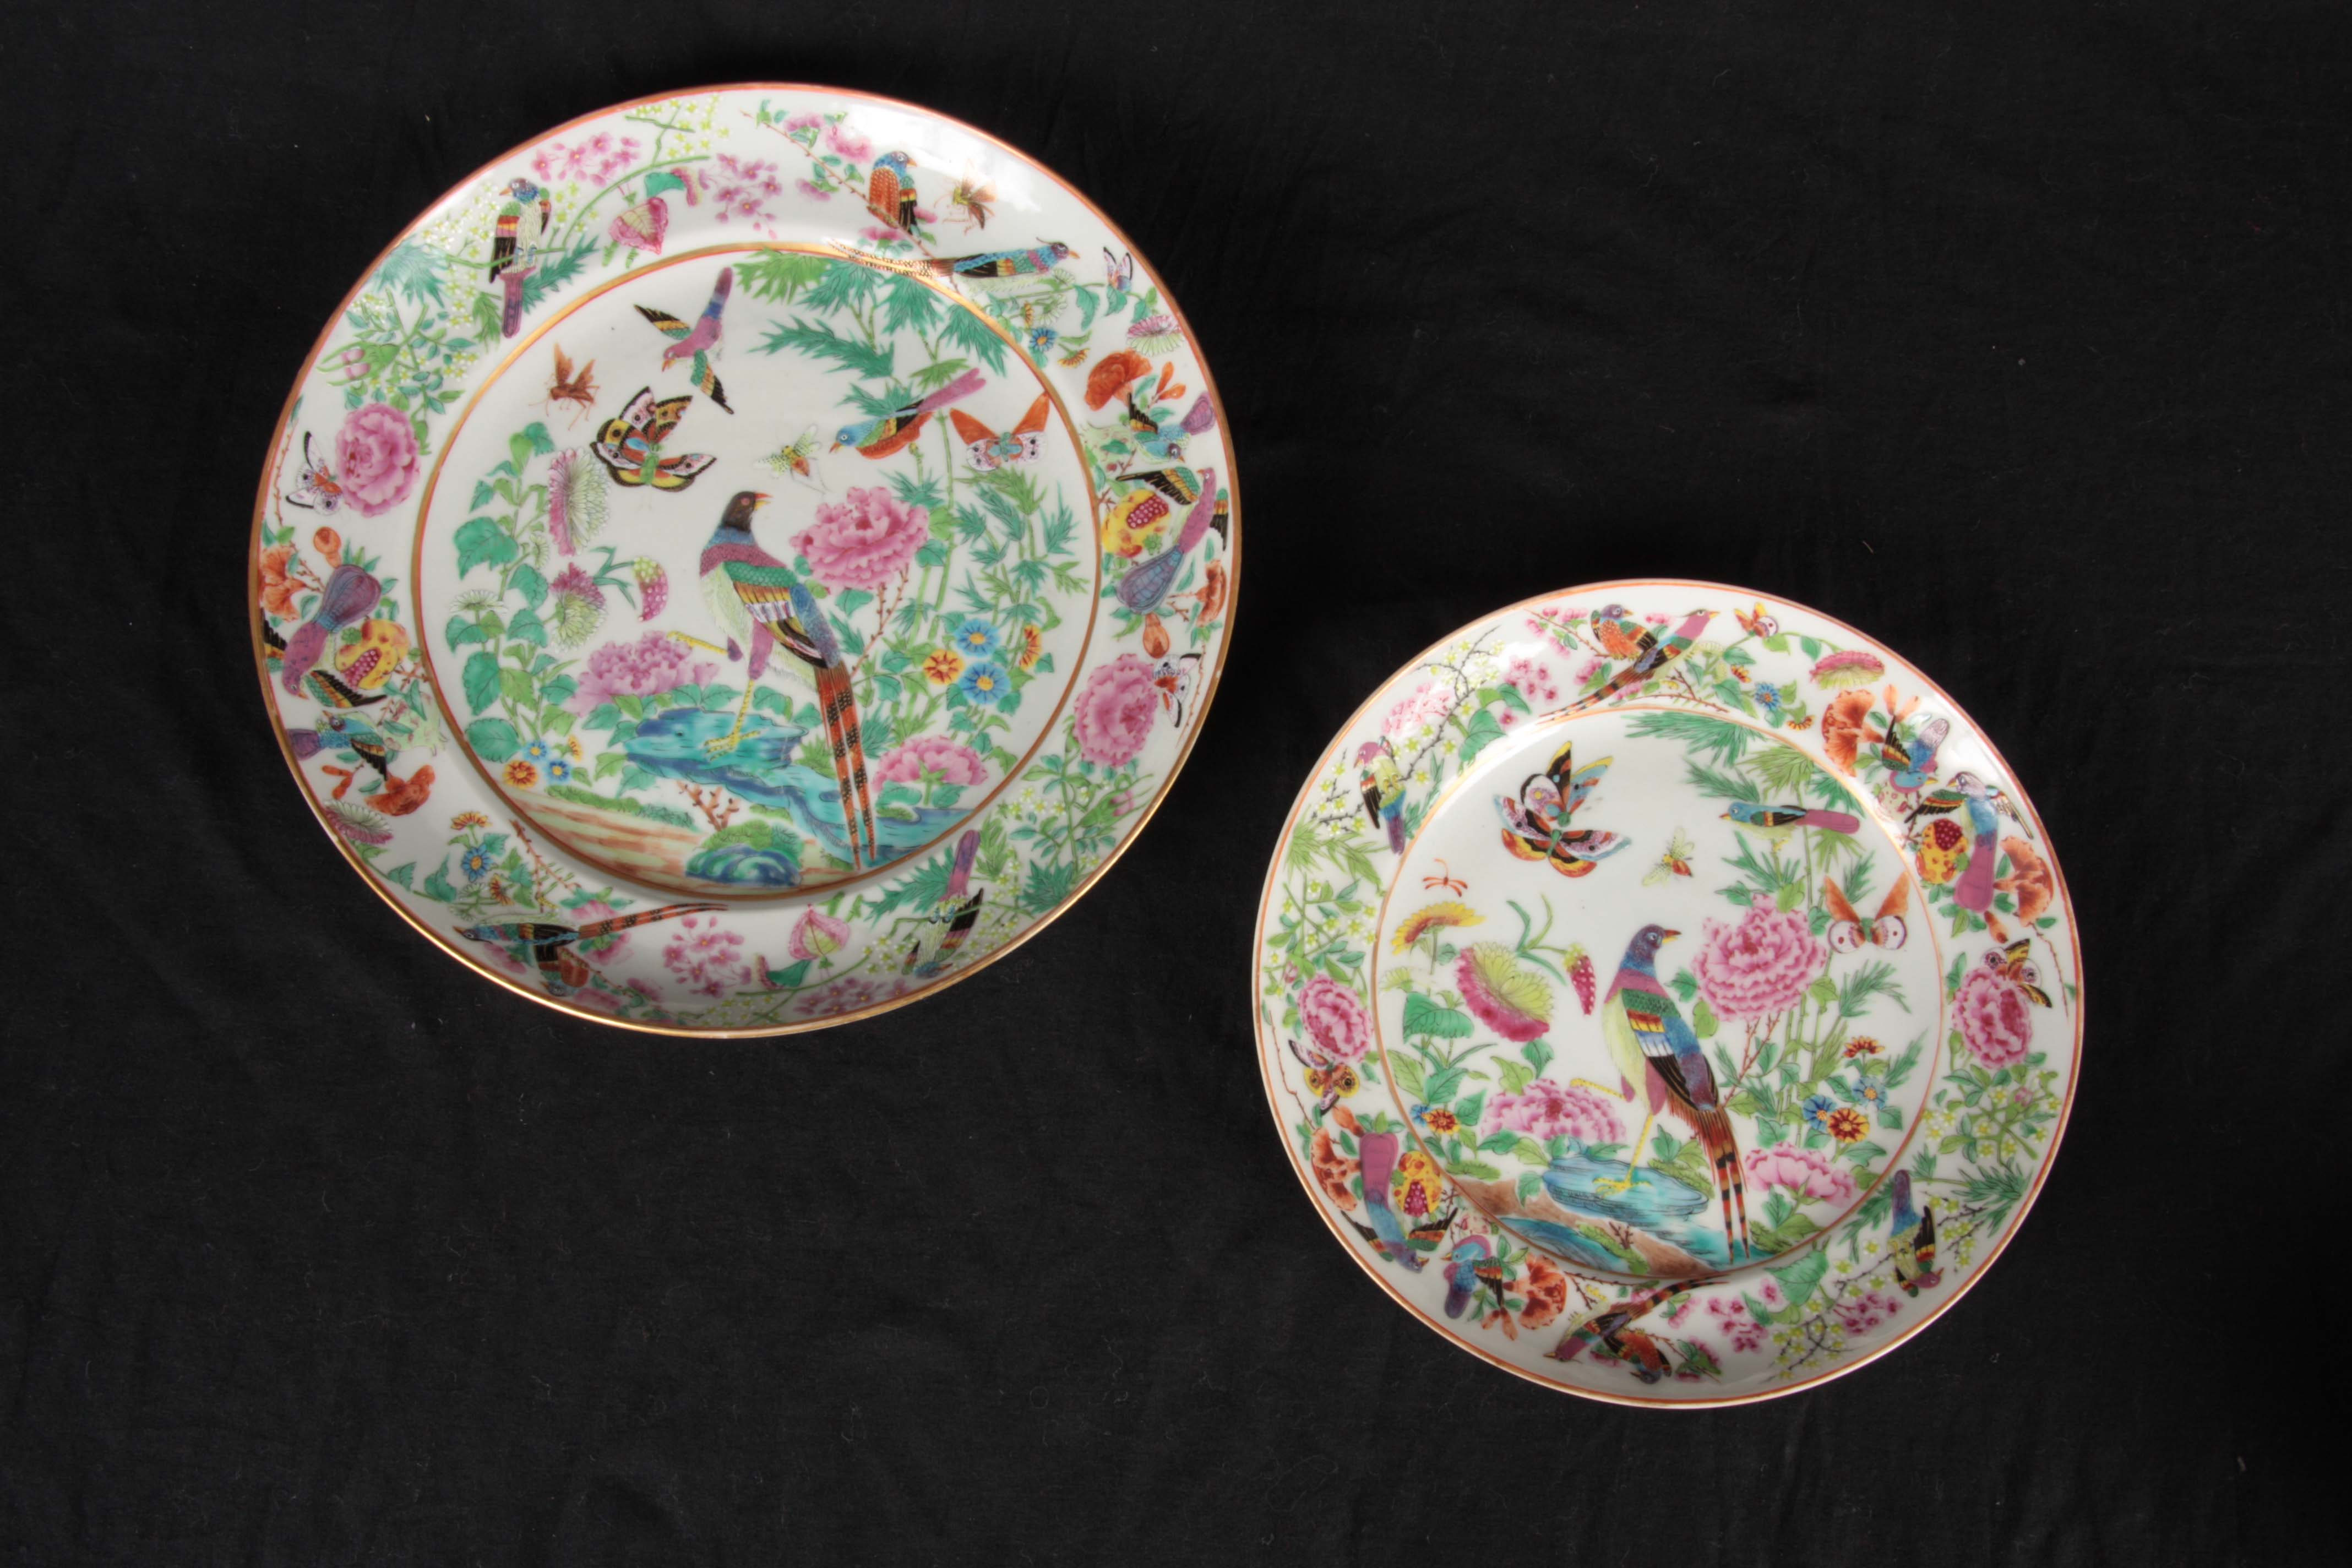 TWO FINE 19TH CENTURY CHINESE FAMILLE VERTE PORCELAIN PLATES decorated with brightly coloured